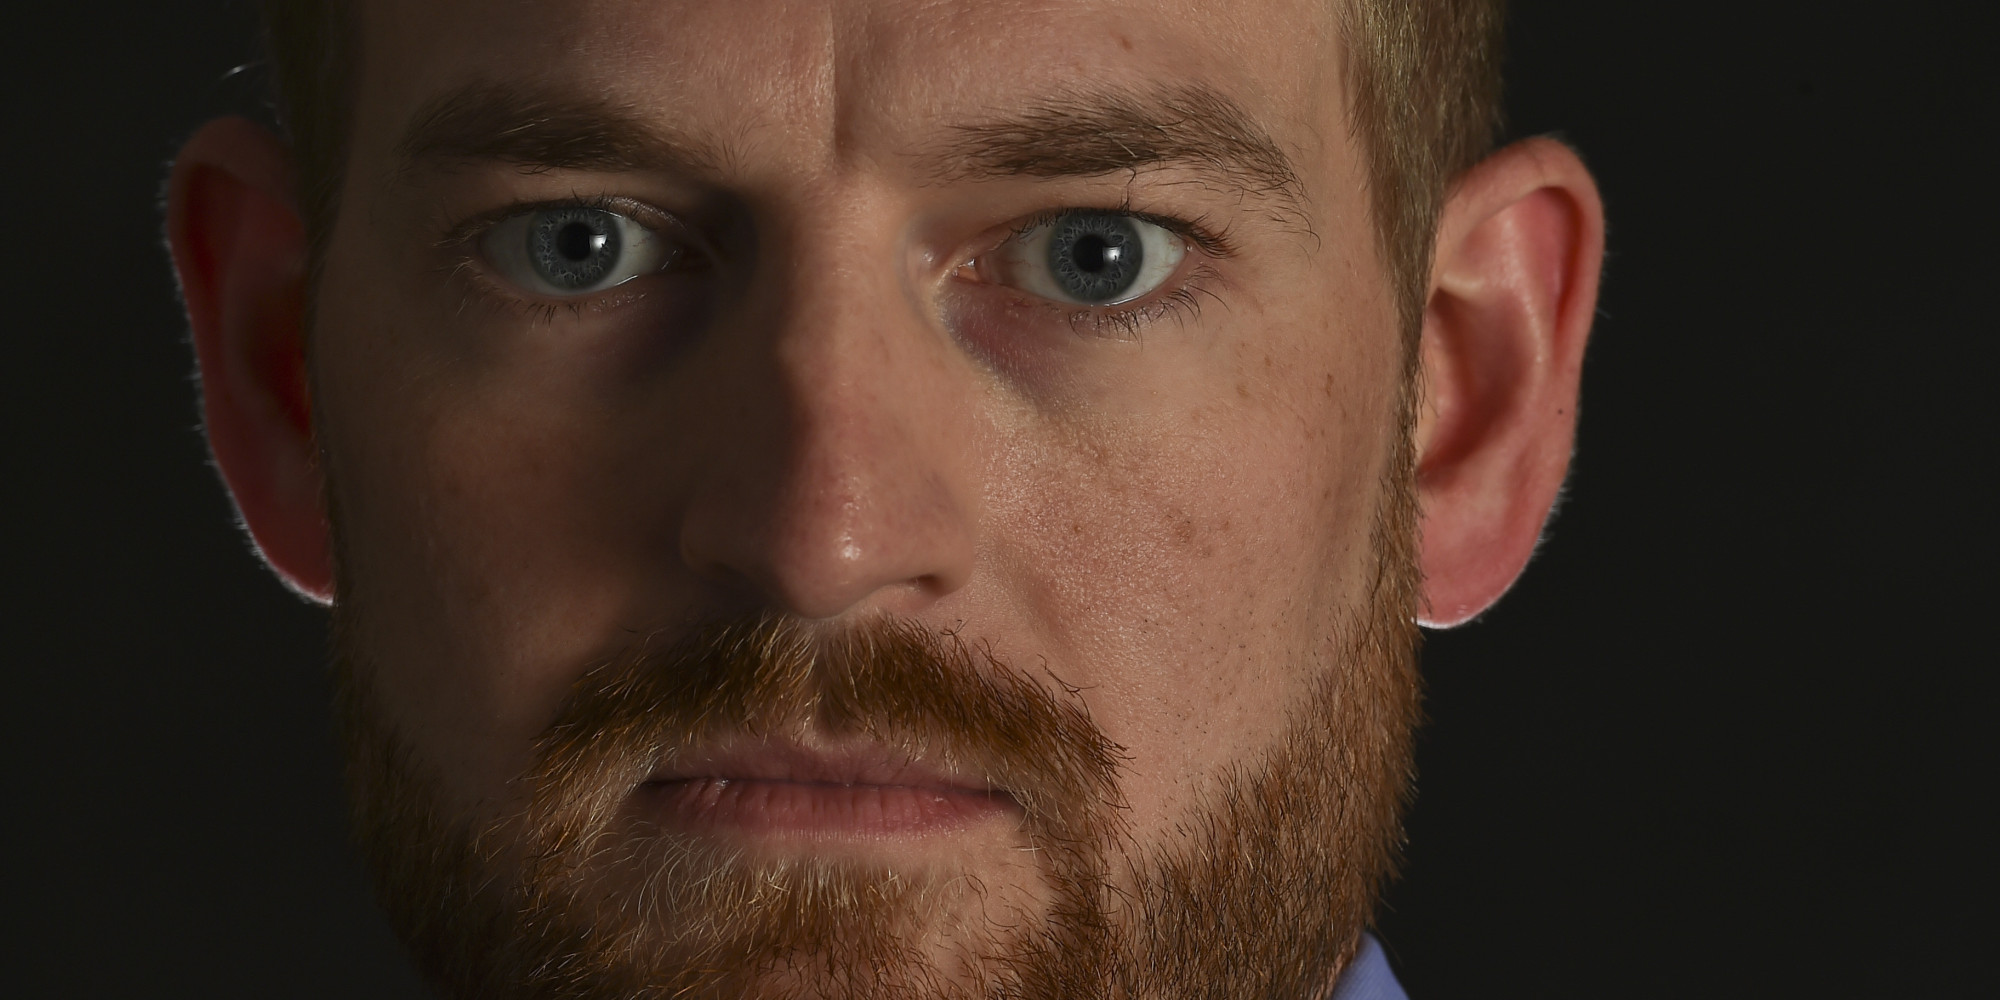 Dr. Kent Brantly, the 33-year-old U.S. doctor who survived Ebola, was driving through the middle of Kentucky when The Huffington Post caught up with him over the phone. Brantly, who was infected with Ebola while working as a missionary doctor in Libe...